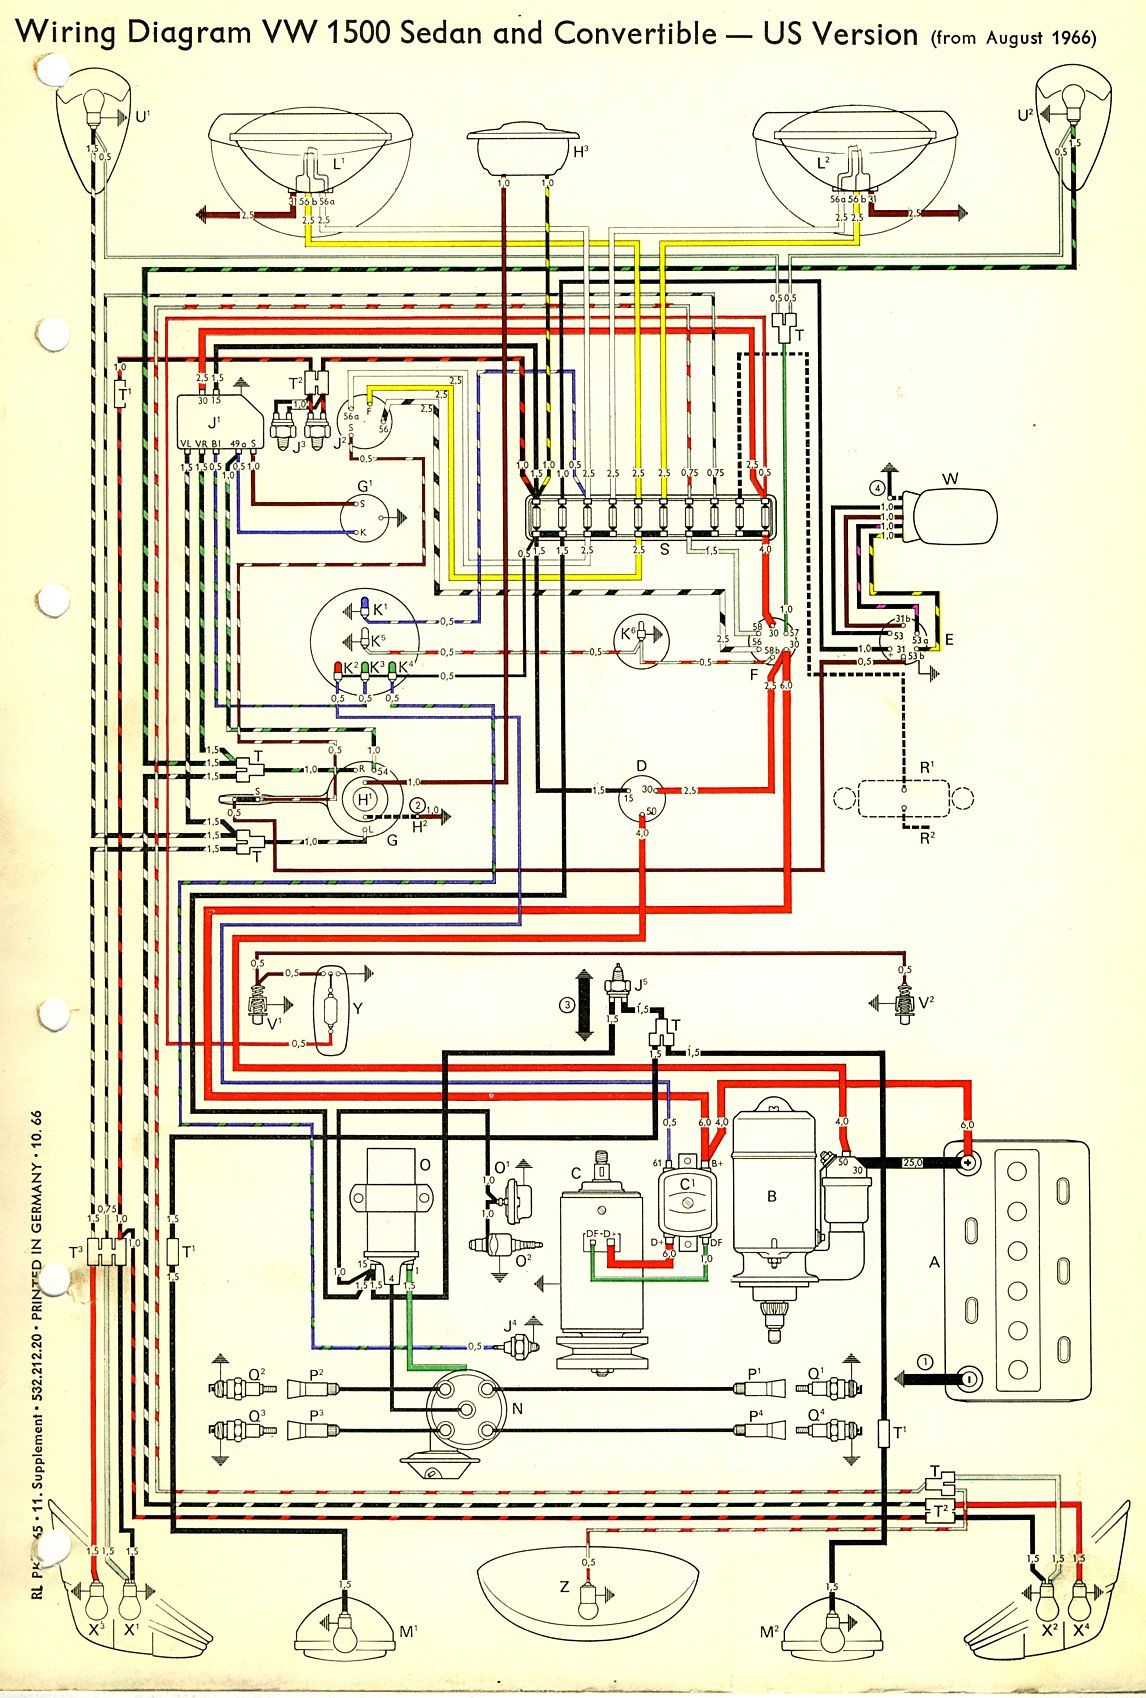 1967 Beetle Wiring Diagram (USA) | TheGoldenBug | best